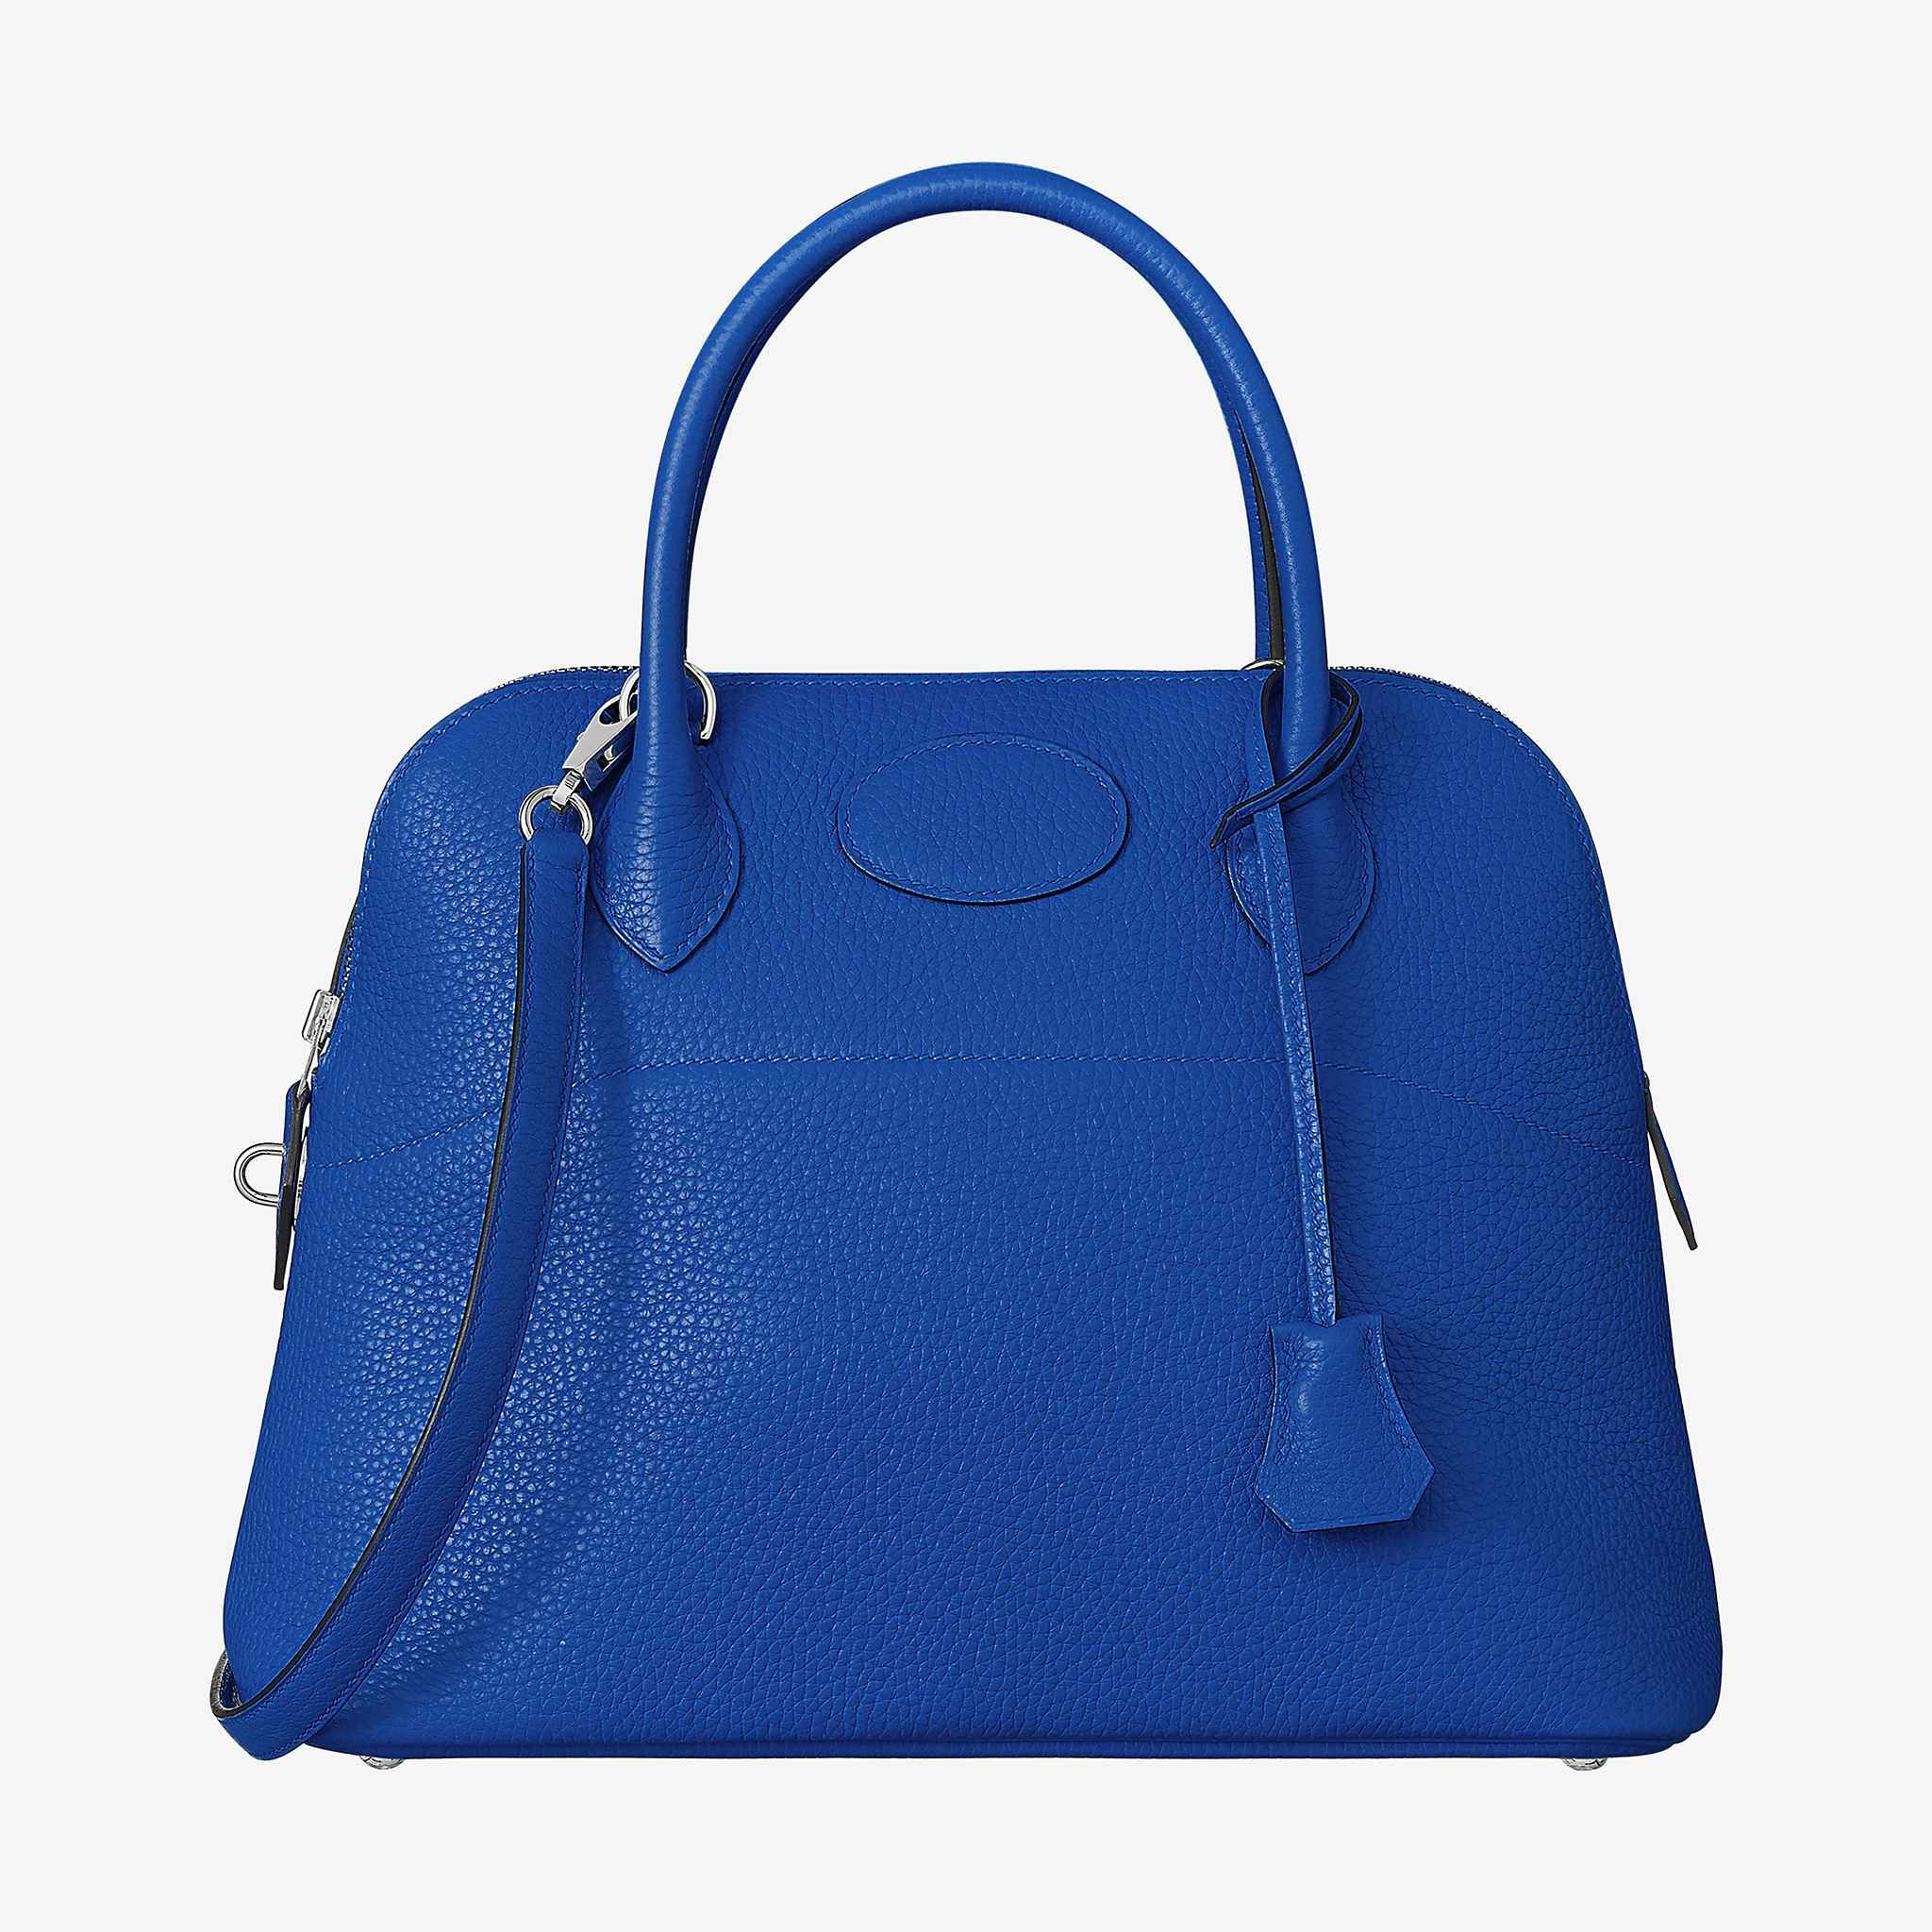 87a52abe87f9 Bolide 31 bag. Hermes bag in taurillon Clemence leather Shoulder strap and  handles Palladium plated hardware blue electrique